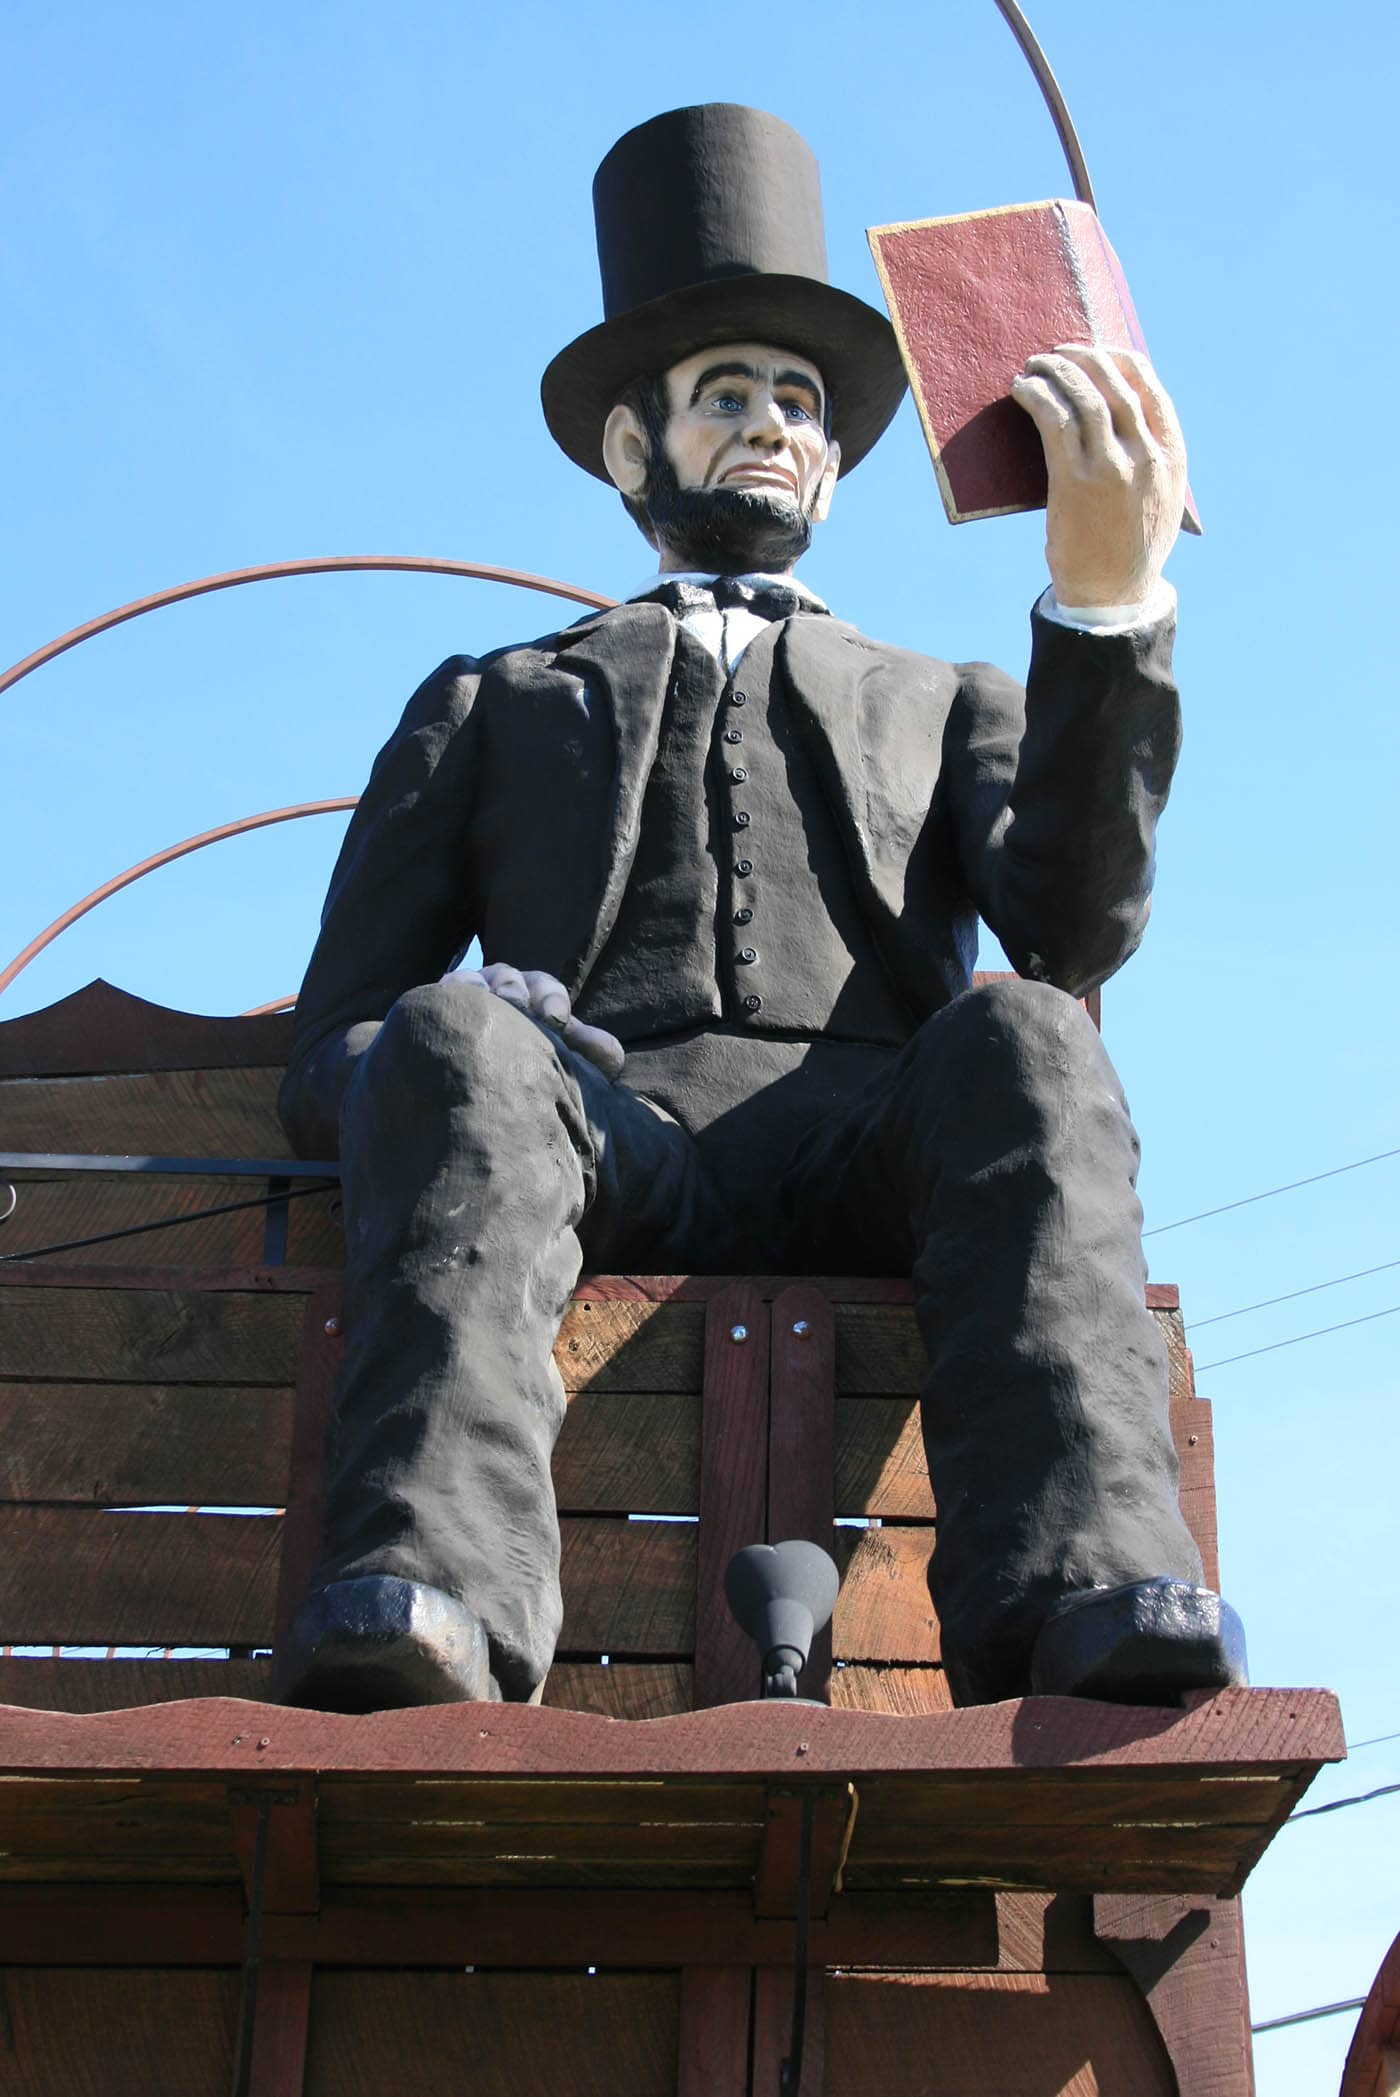 Photos of the life-sized Abraham Lincoln riding on the World's Largest Covered Wagon - a weird roadside attraction in Lincoln, Illinois. See this place to visit in Illinois on your Route 66 road trip through Illinois. A must see roadside attraction to add to your travel itinerary and bucket lists. #IllinoisRoadsideAttractions #IllinoisRoadsideAttraction #RoadsideAttractions #RoadsideAttraction #RoadTrip #IllinoisRoadTrip #Route66 #IllinoisRoute66 #IllinoisRoadTripItinerary